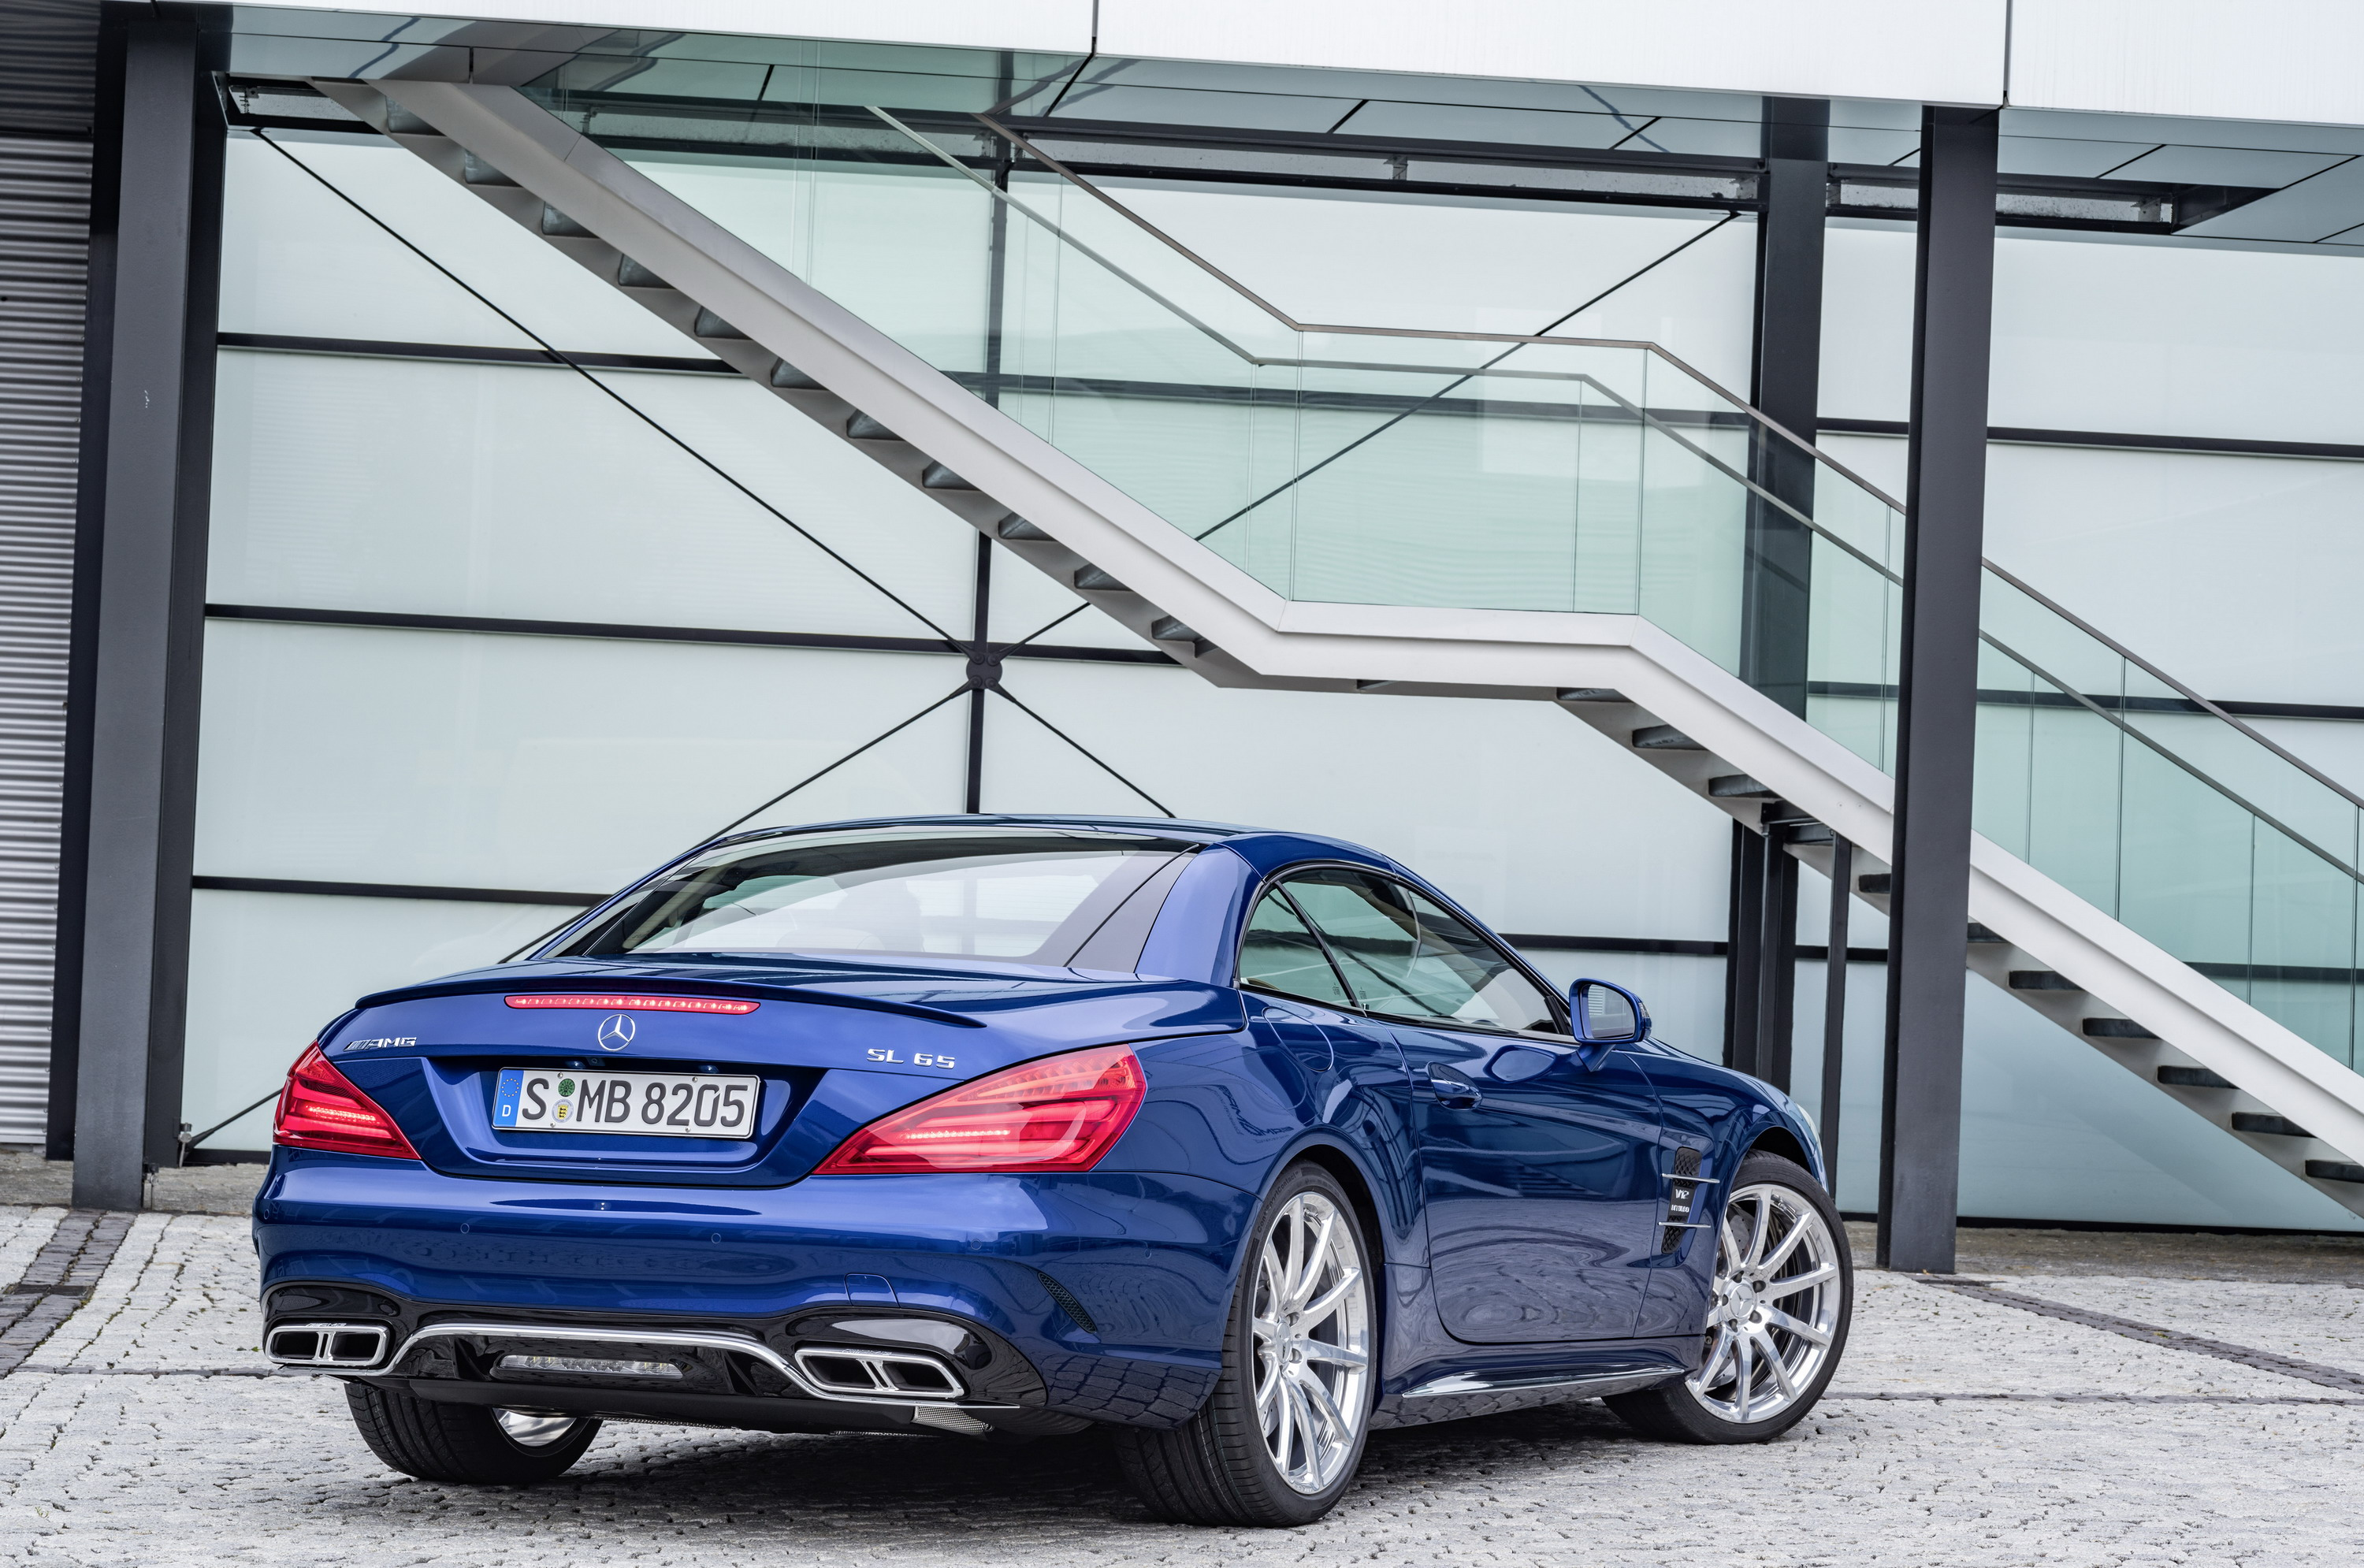 2017 Mercedes-AMG SL65 | Top Speed